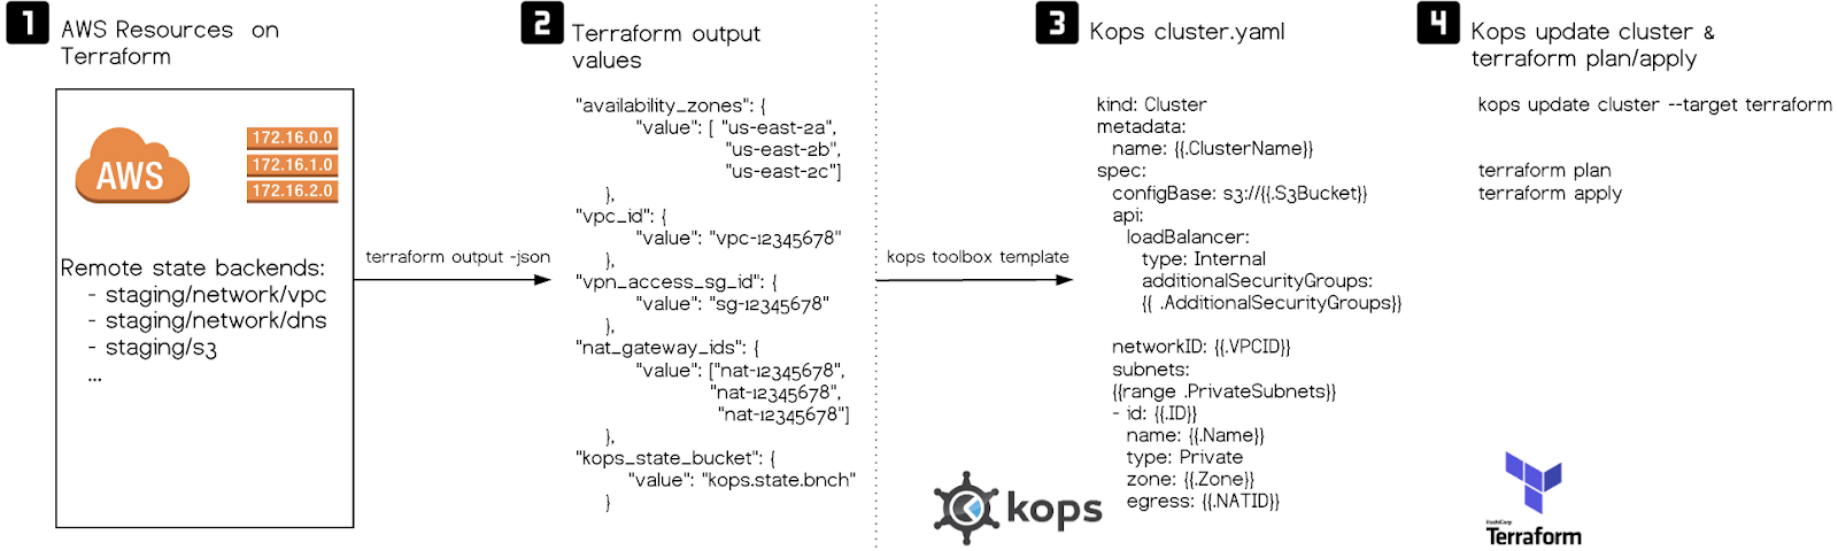 Deploying Kubernetes clusters with kops and Terraform